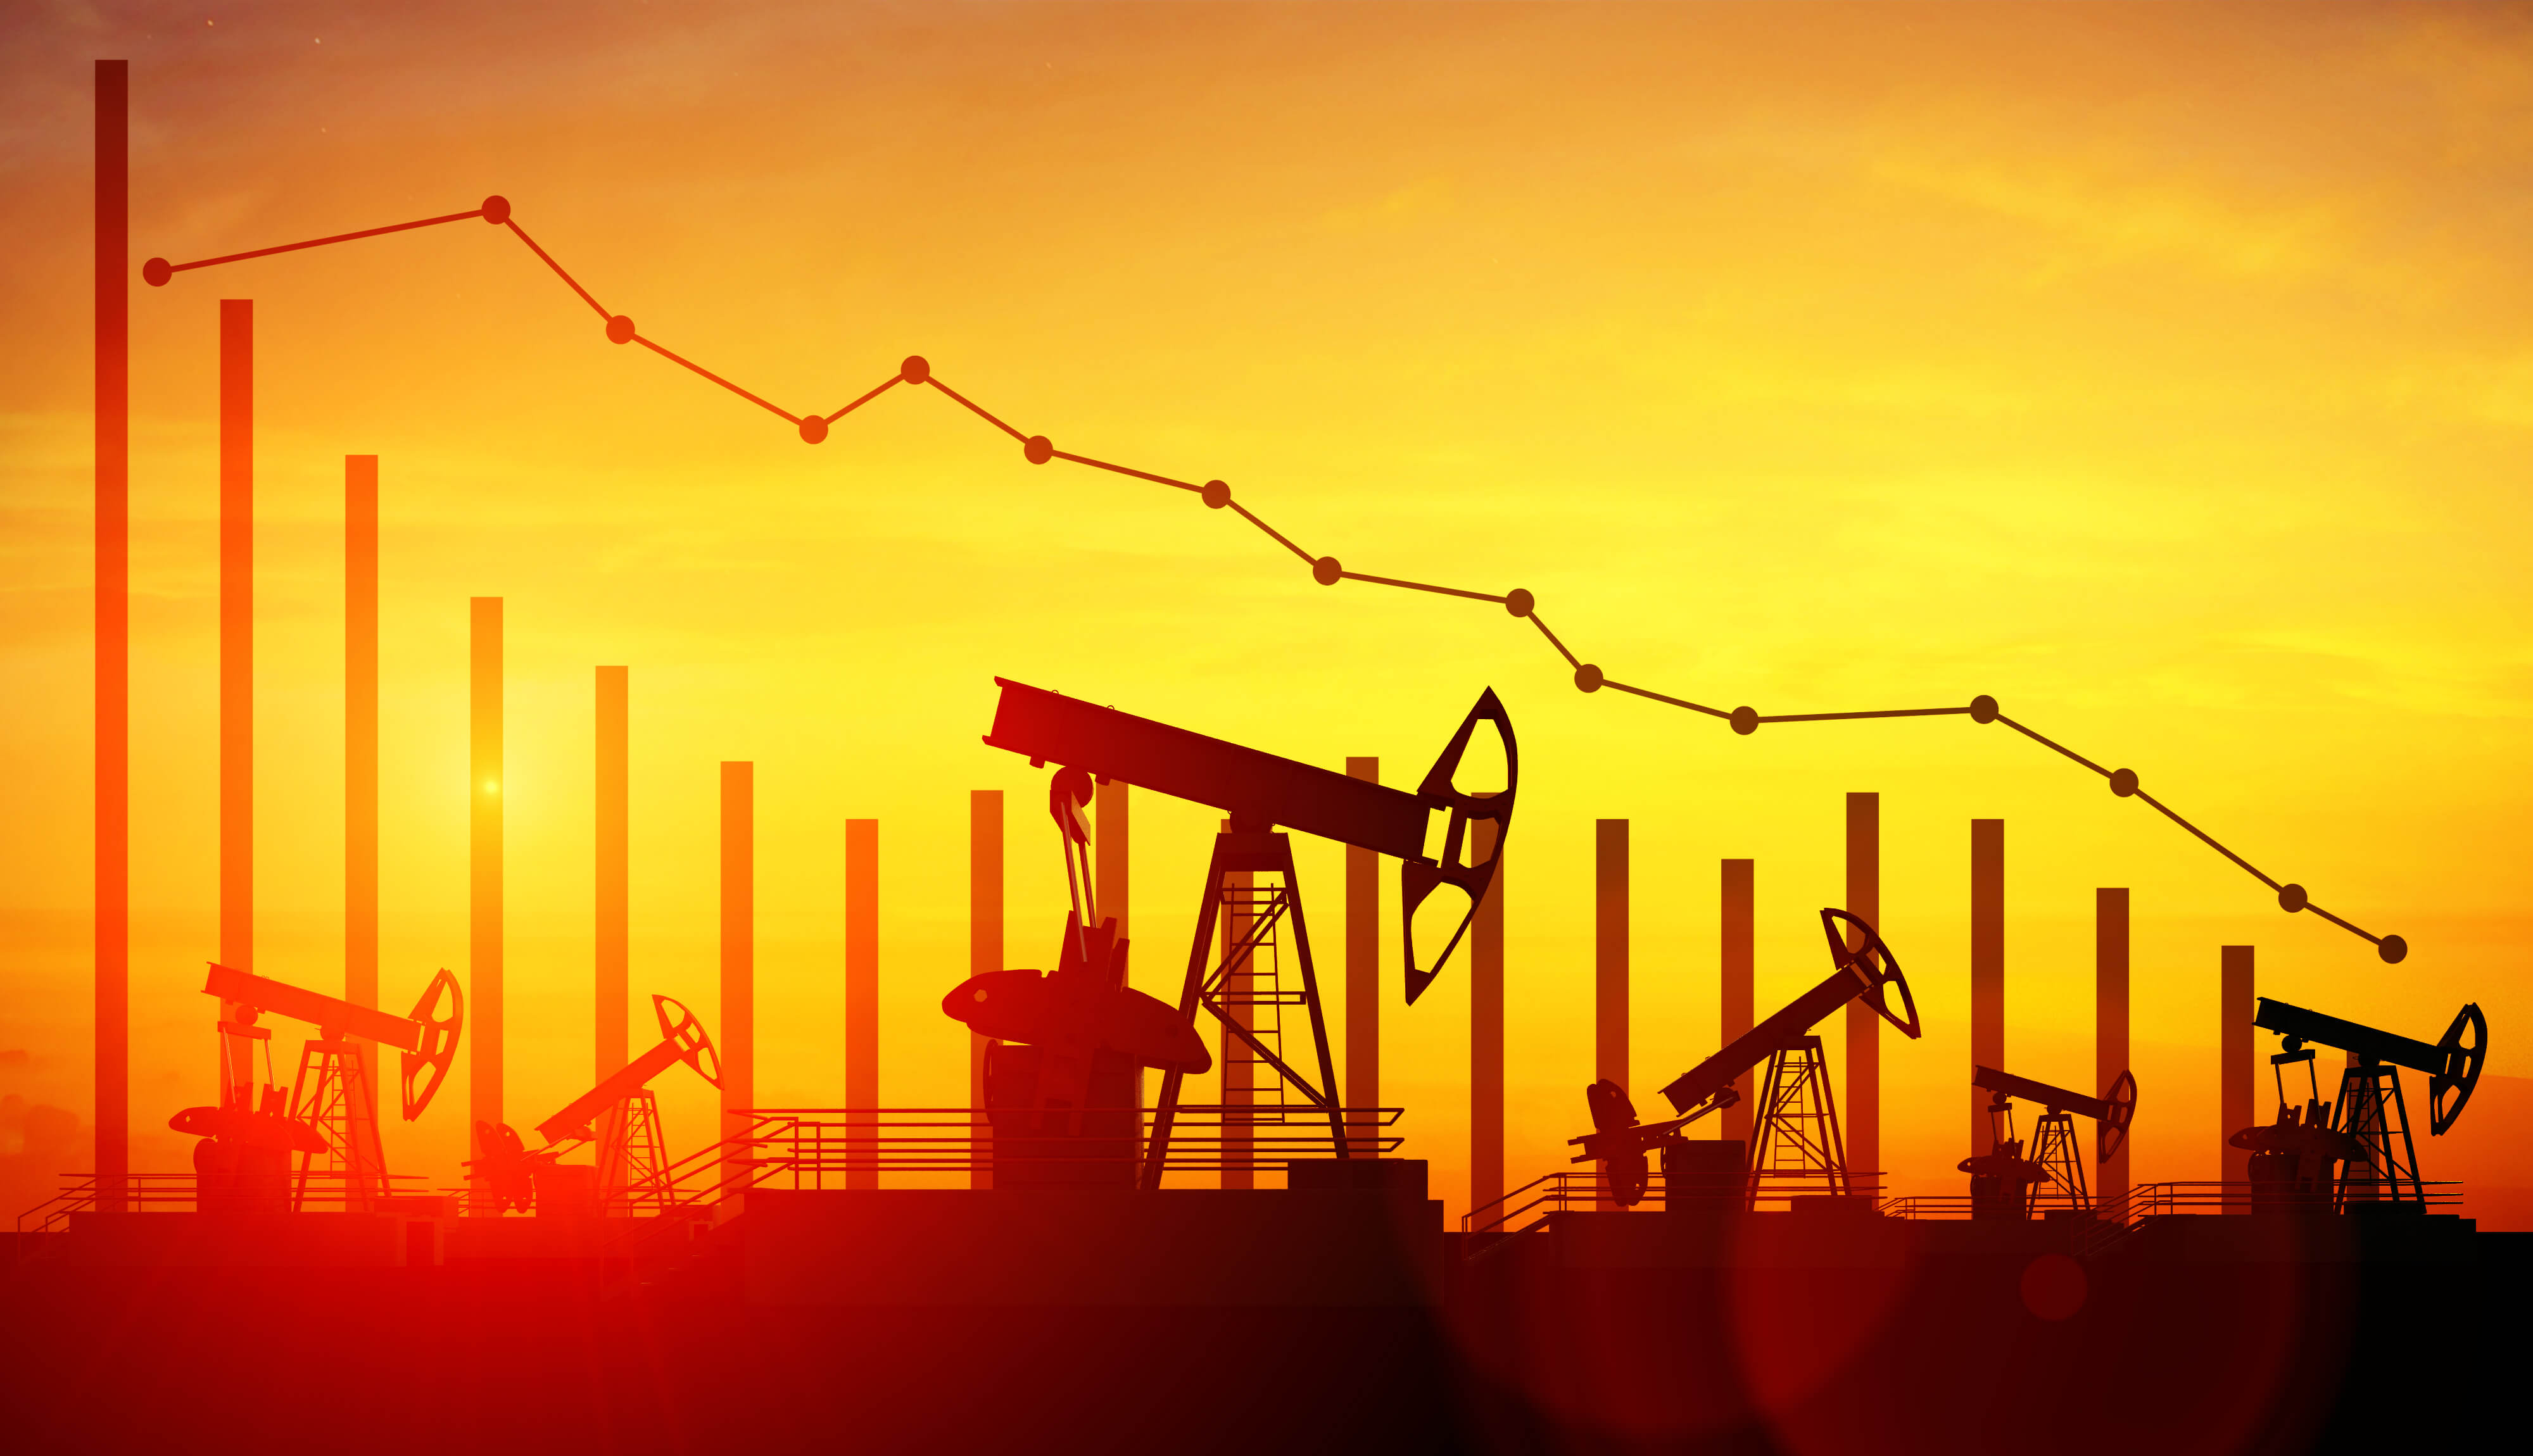 WTI crude oil price declined after posting a modest increase on Wednesday.